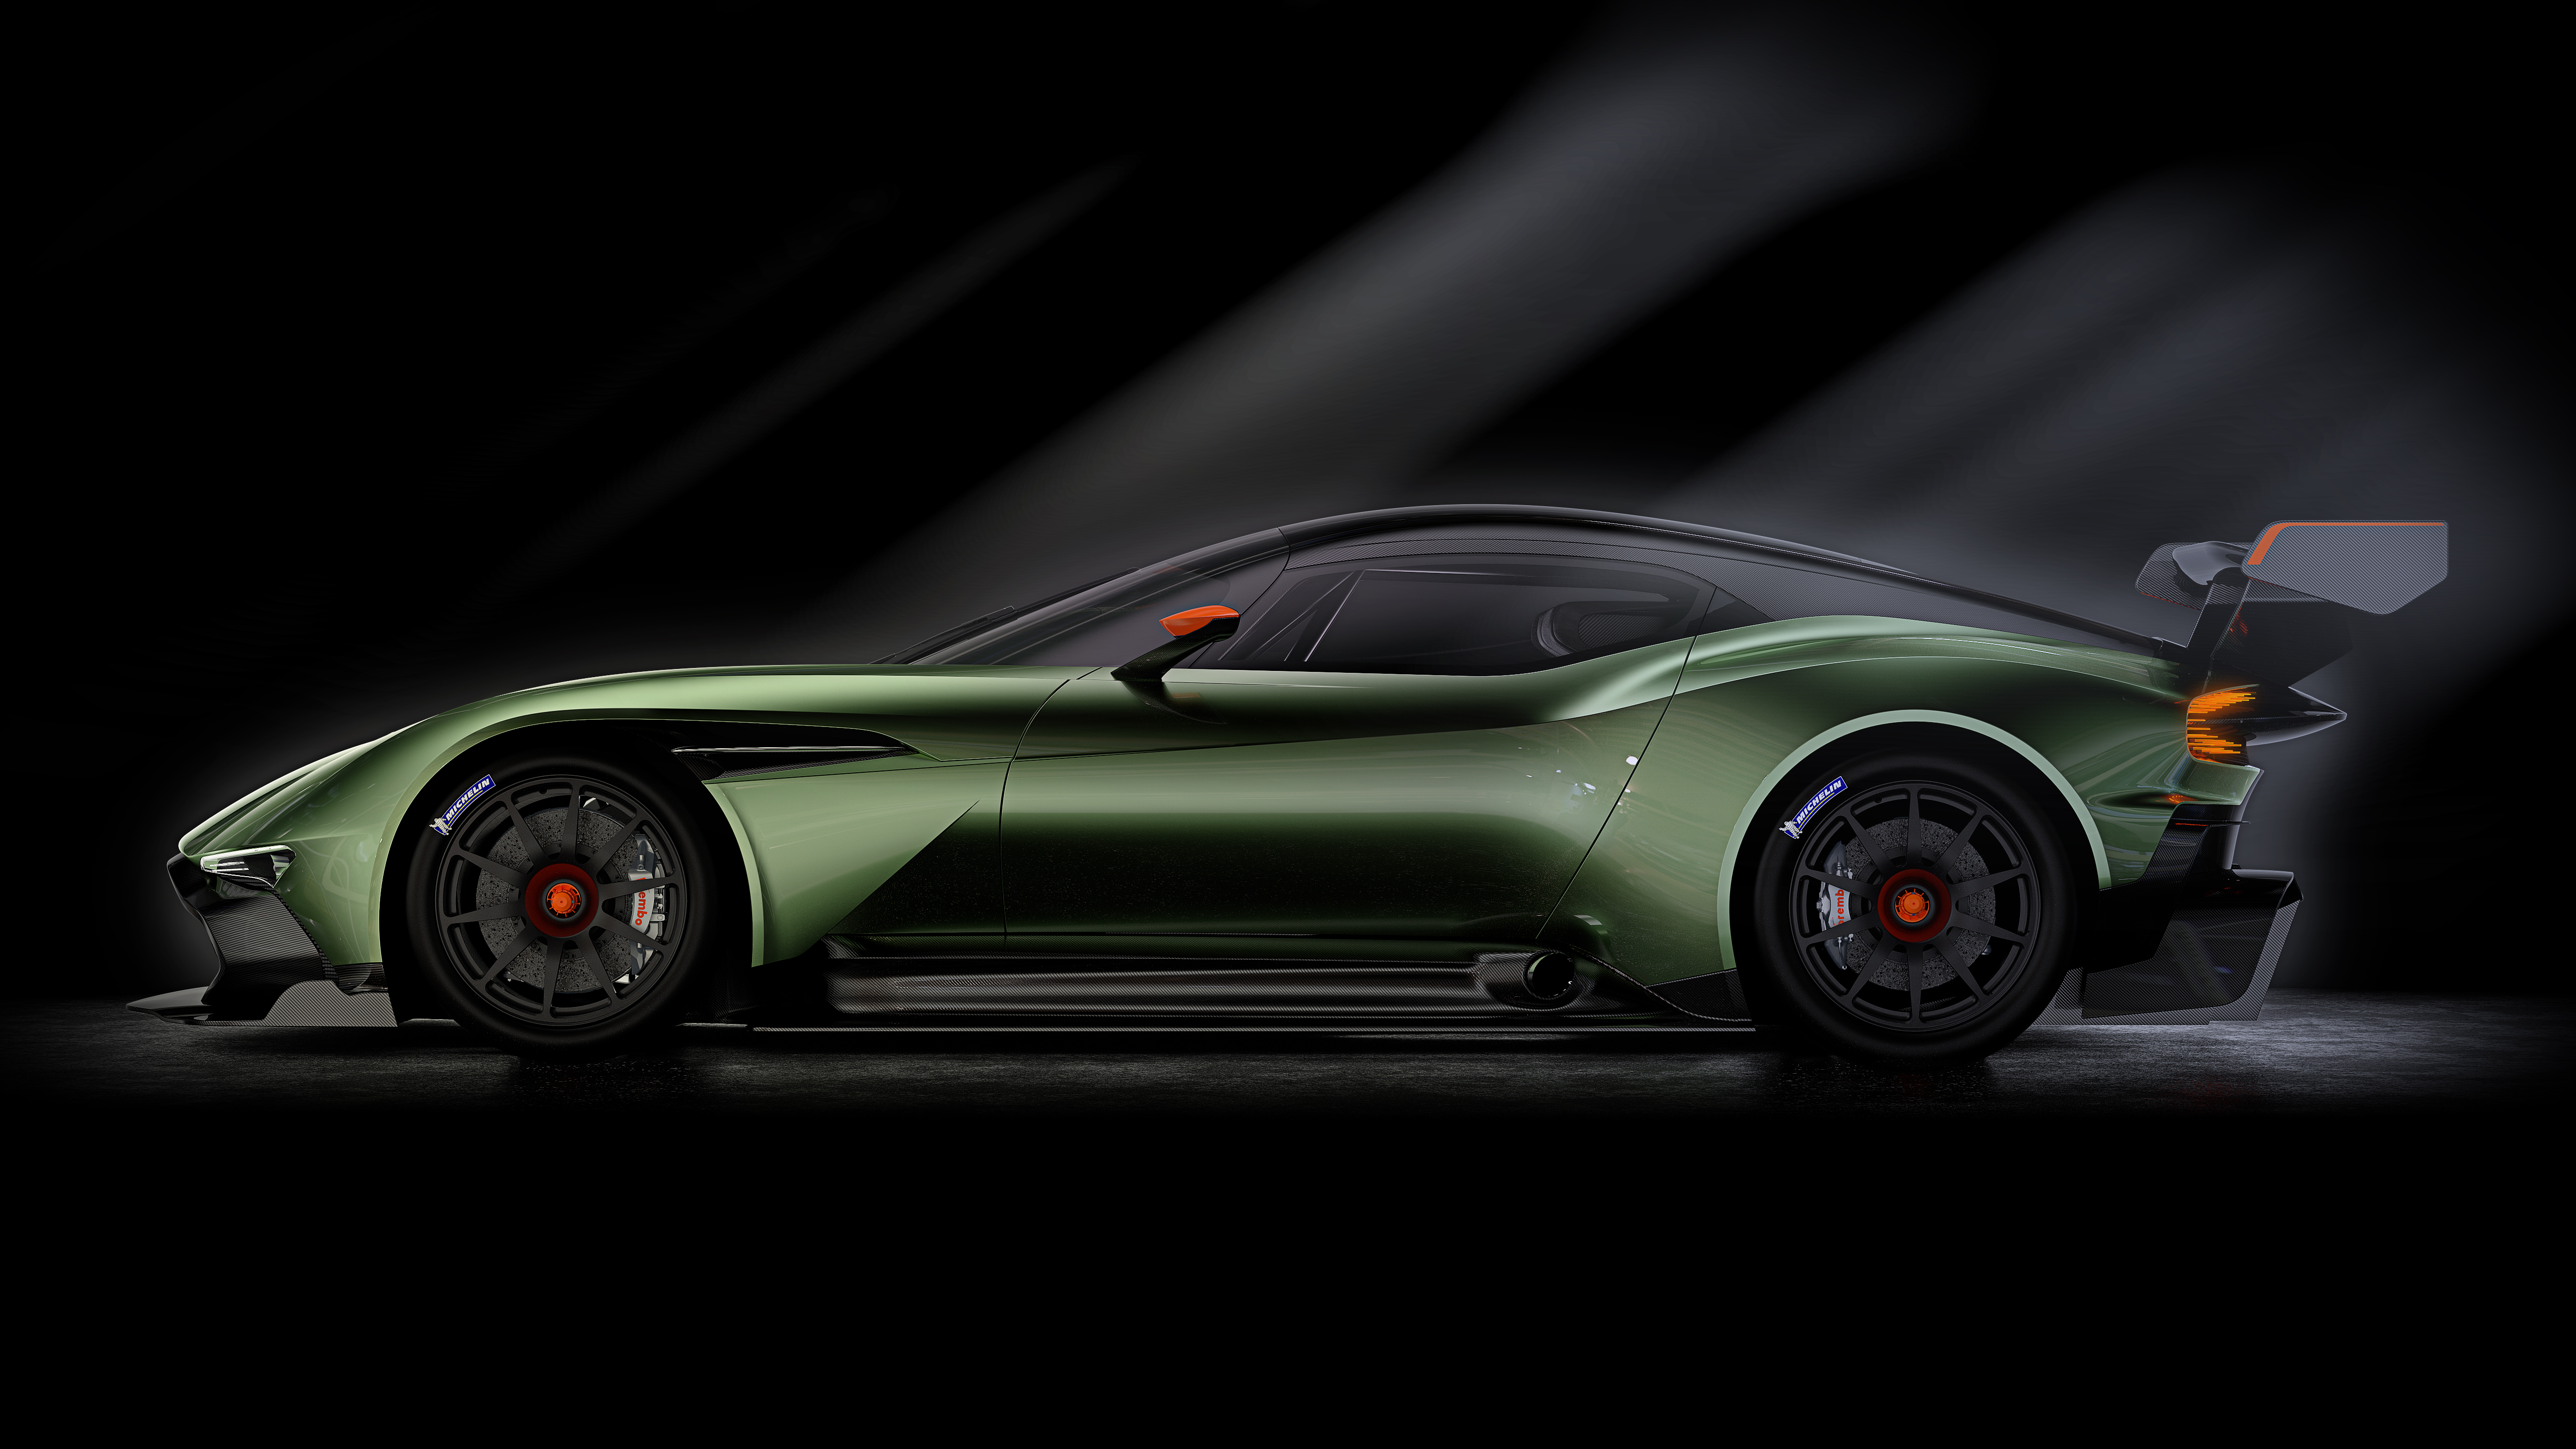 introducing the aston martin vulcan a track only supercar automotive rhythms. Black Bedroom Furniture Sets. Home Design Ideas